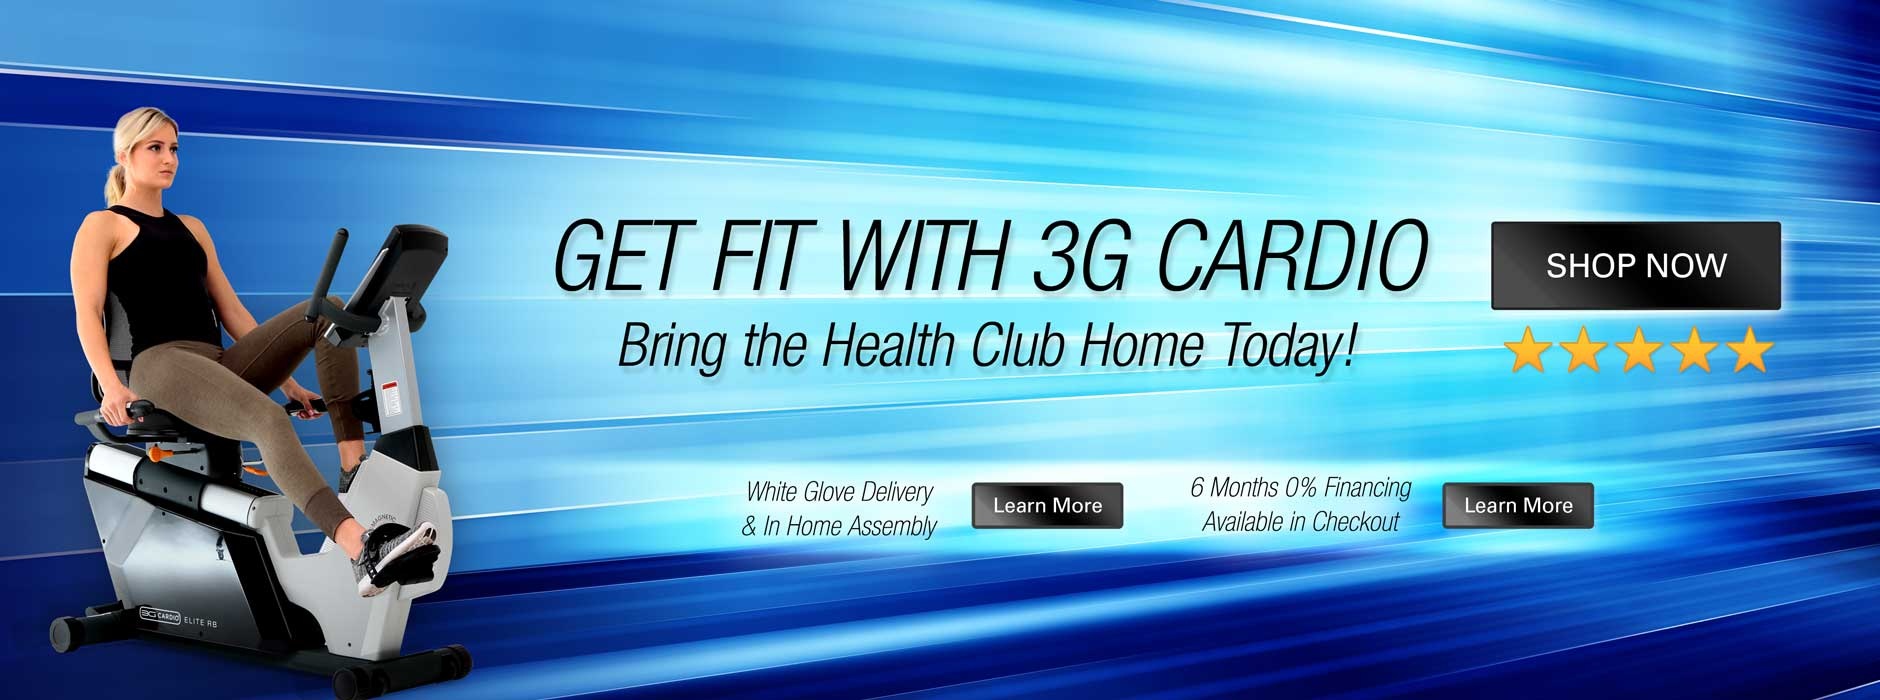 Get Fit with 3G Cardio - Bring the Health Club Home - Best Customer Service in Fitness Equipment